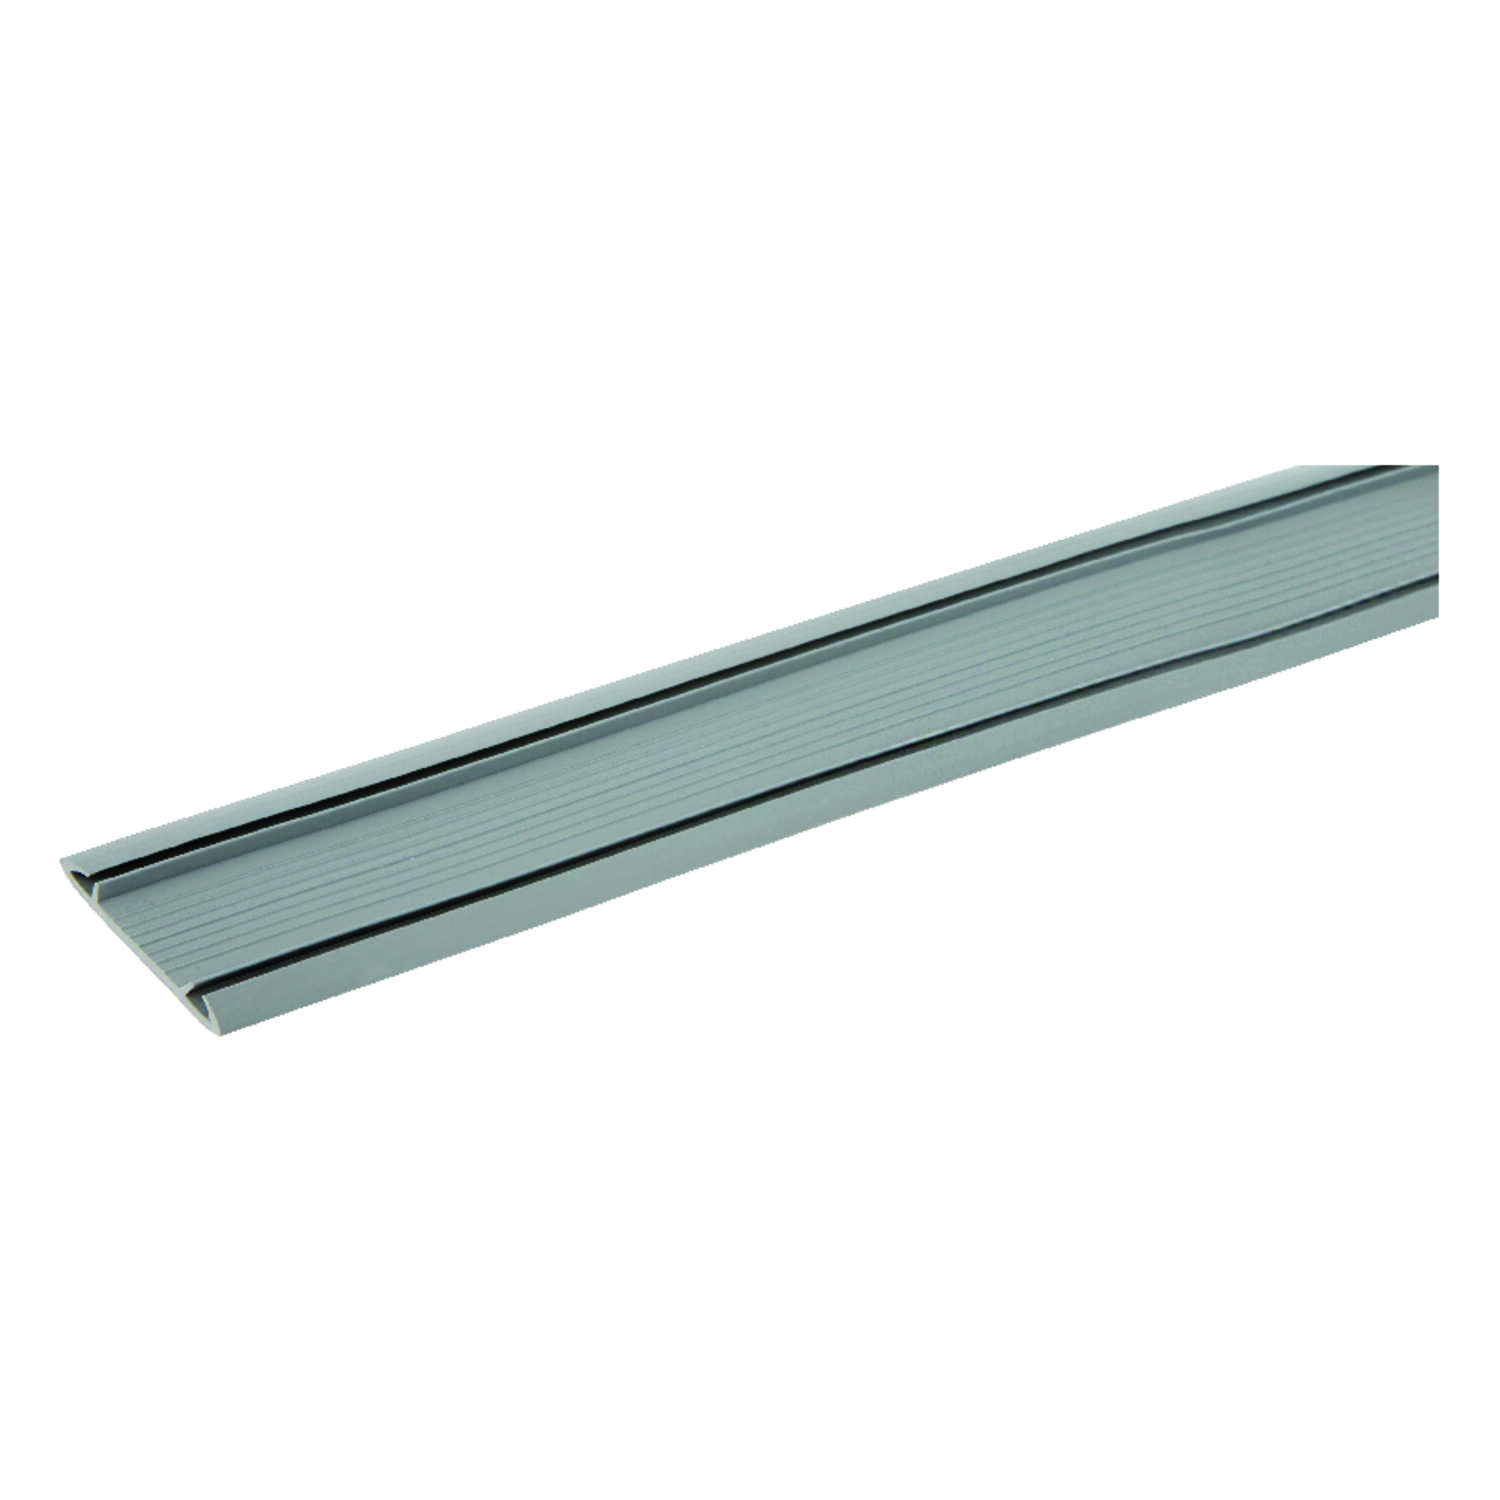 M-D Building Products  Gray  Vinyl  Threshold Insert  For Door 36 in. L x 5/8 in.